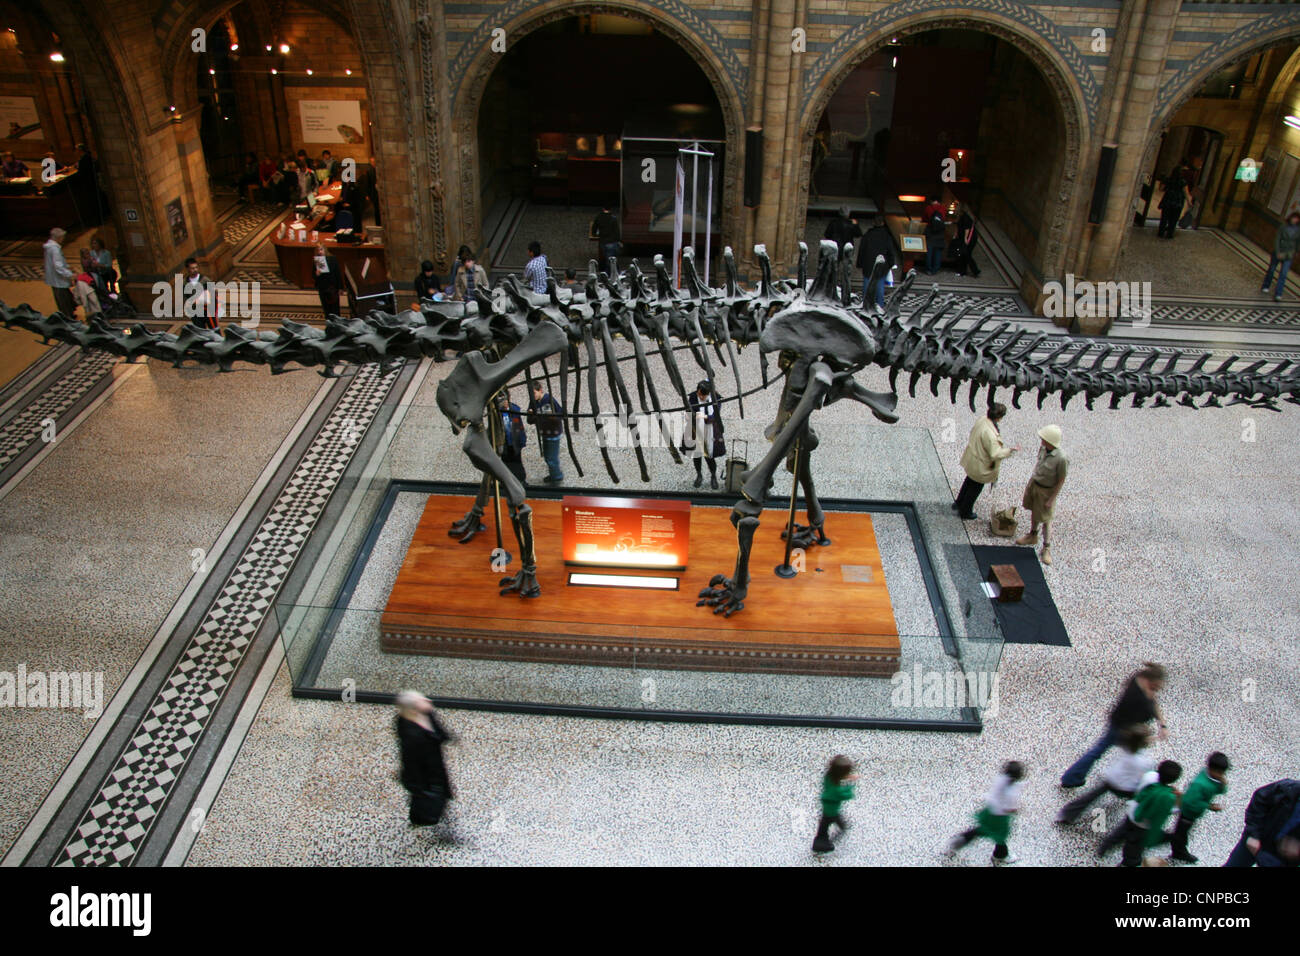 The main hall of the London Natural History Museum. England, UK. - Stock Image